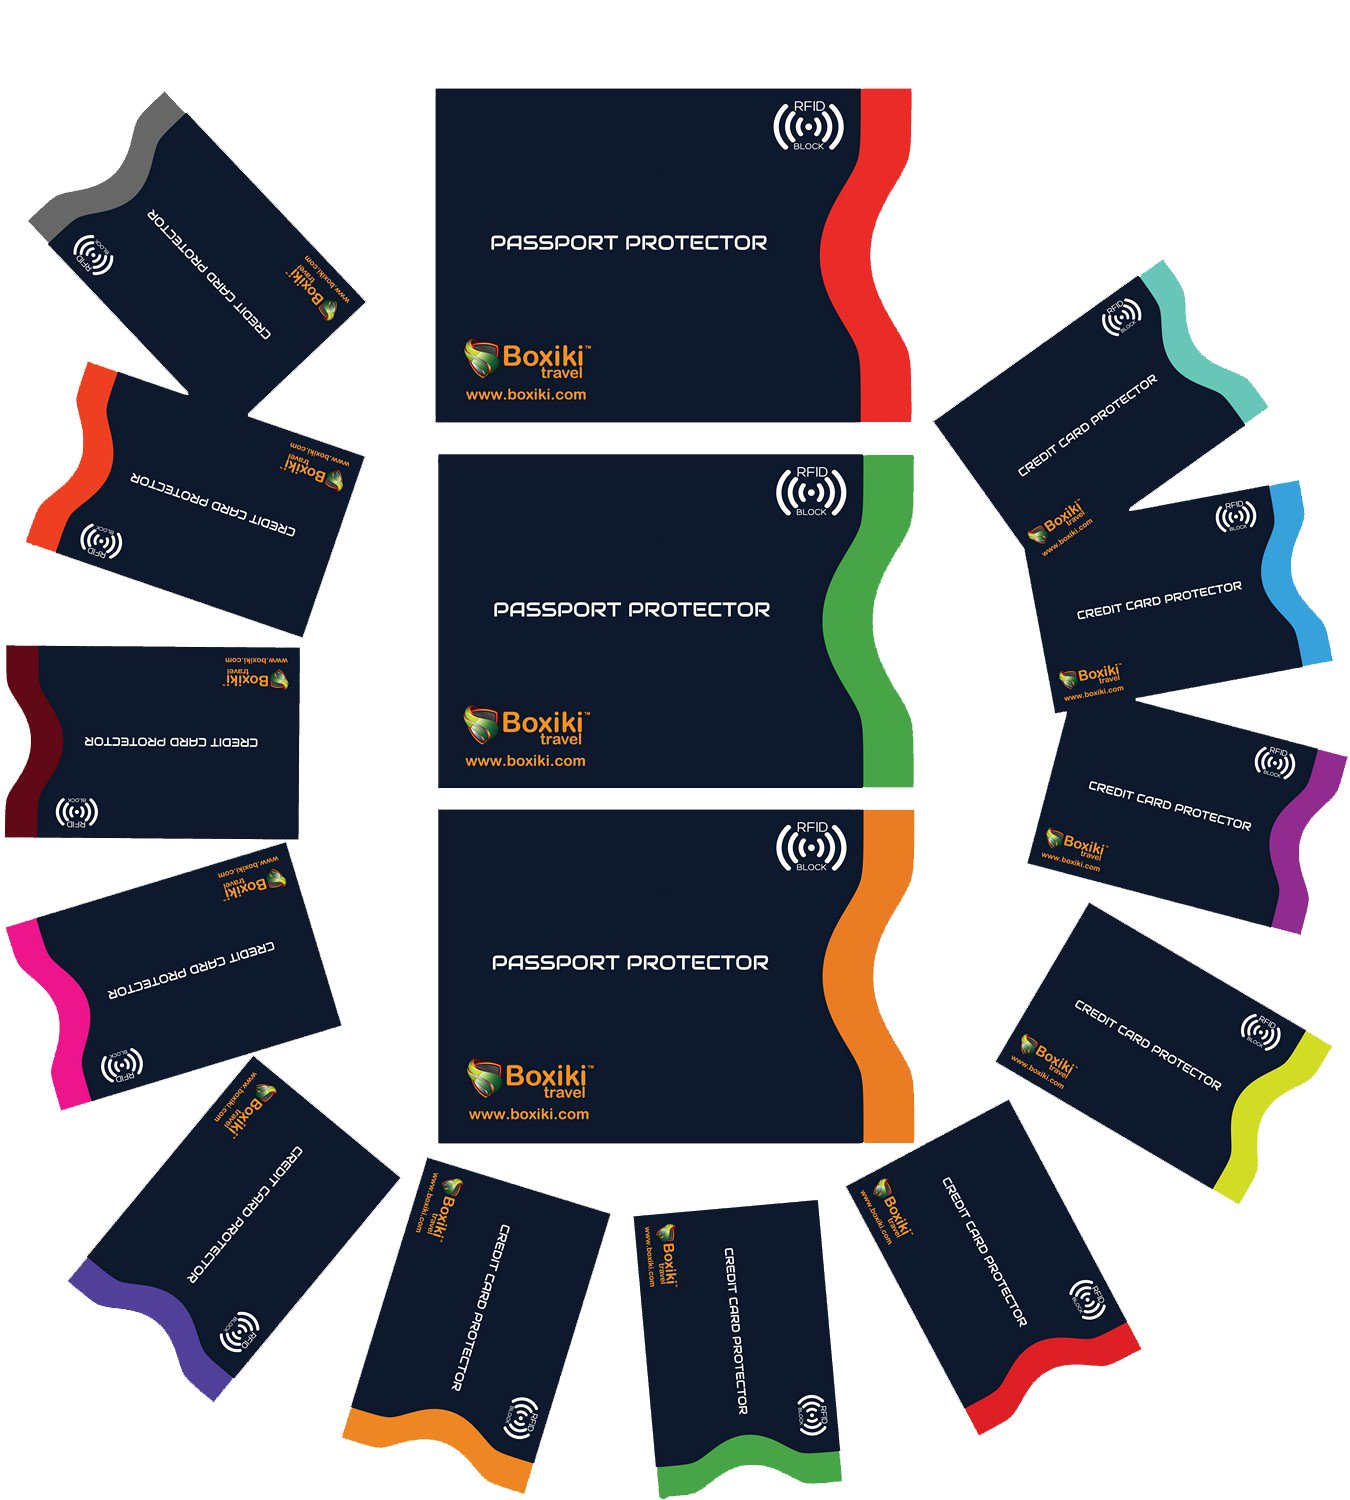 RFID Blocking Sleeves, Set with Color Coding. Identity Theft Prevention RFID Credit Card Holders by Boxiki Travel (Set of 12 Credit Card Protector Sleeves + 3 Passport Holders) (Navy Blue)